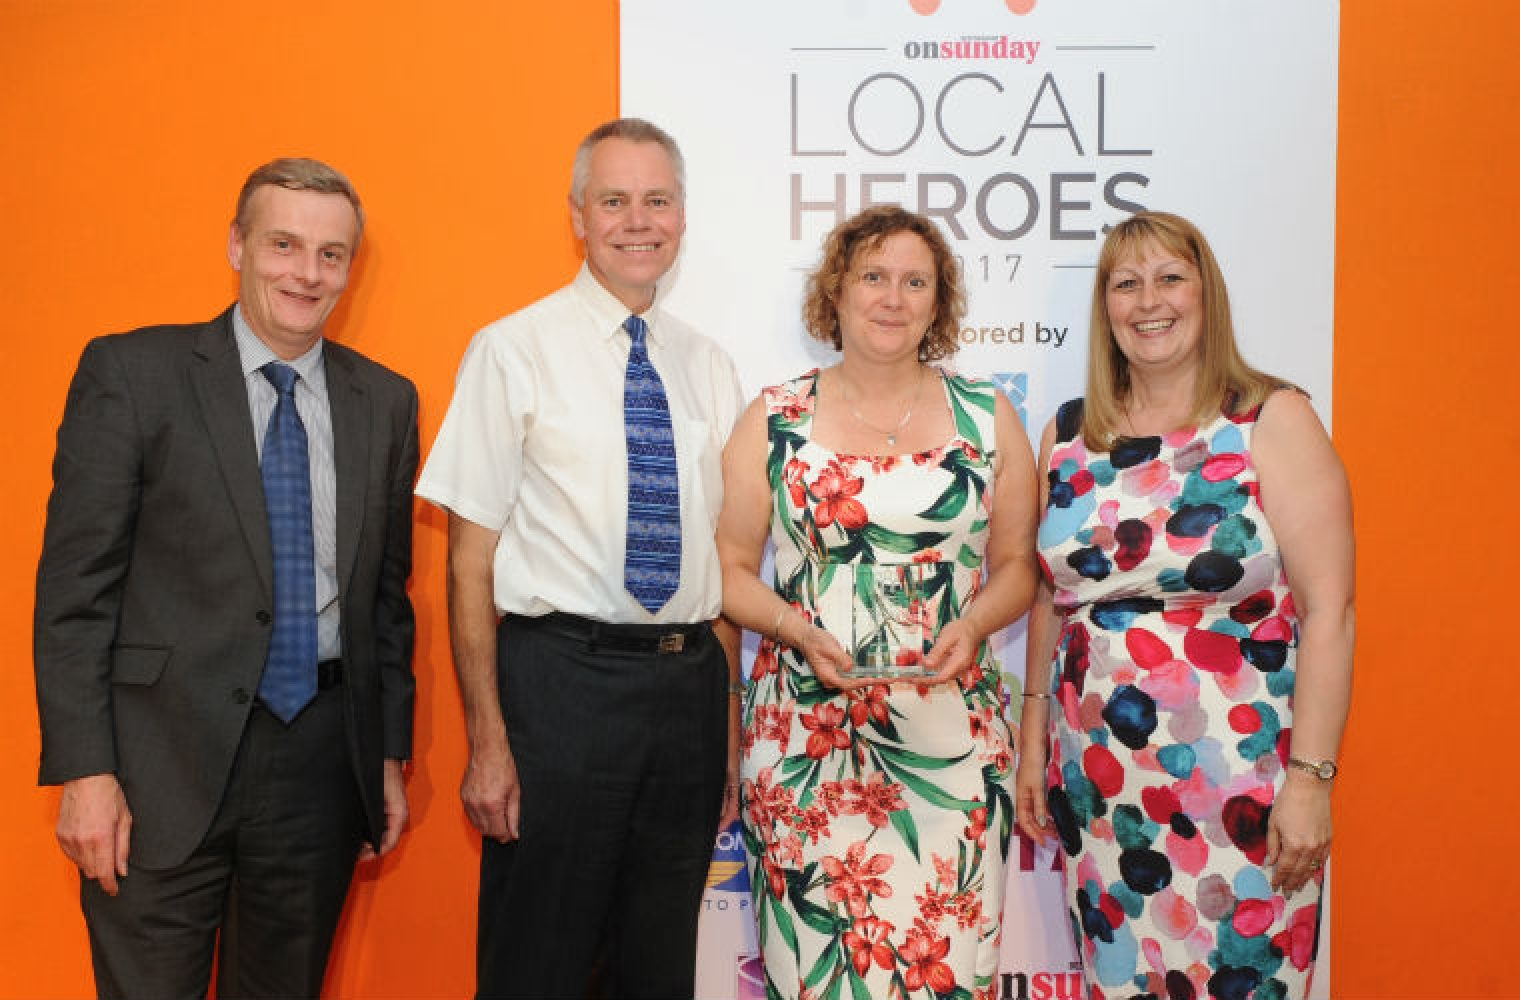 Comline Supports Bedfordshire Charities By Sponsoring Local